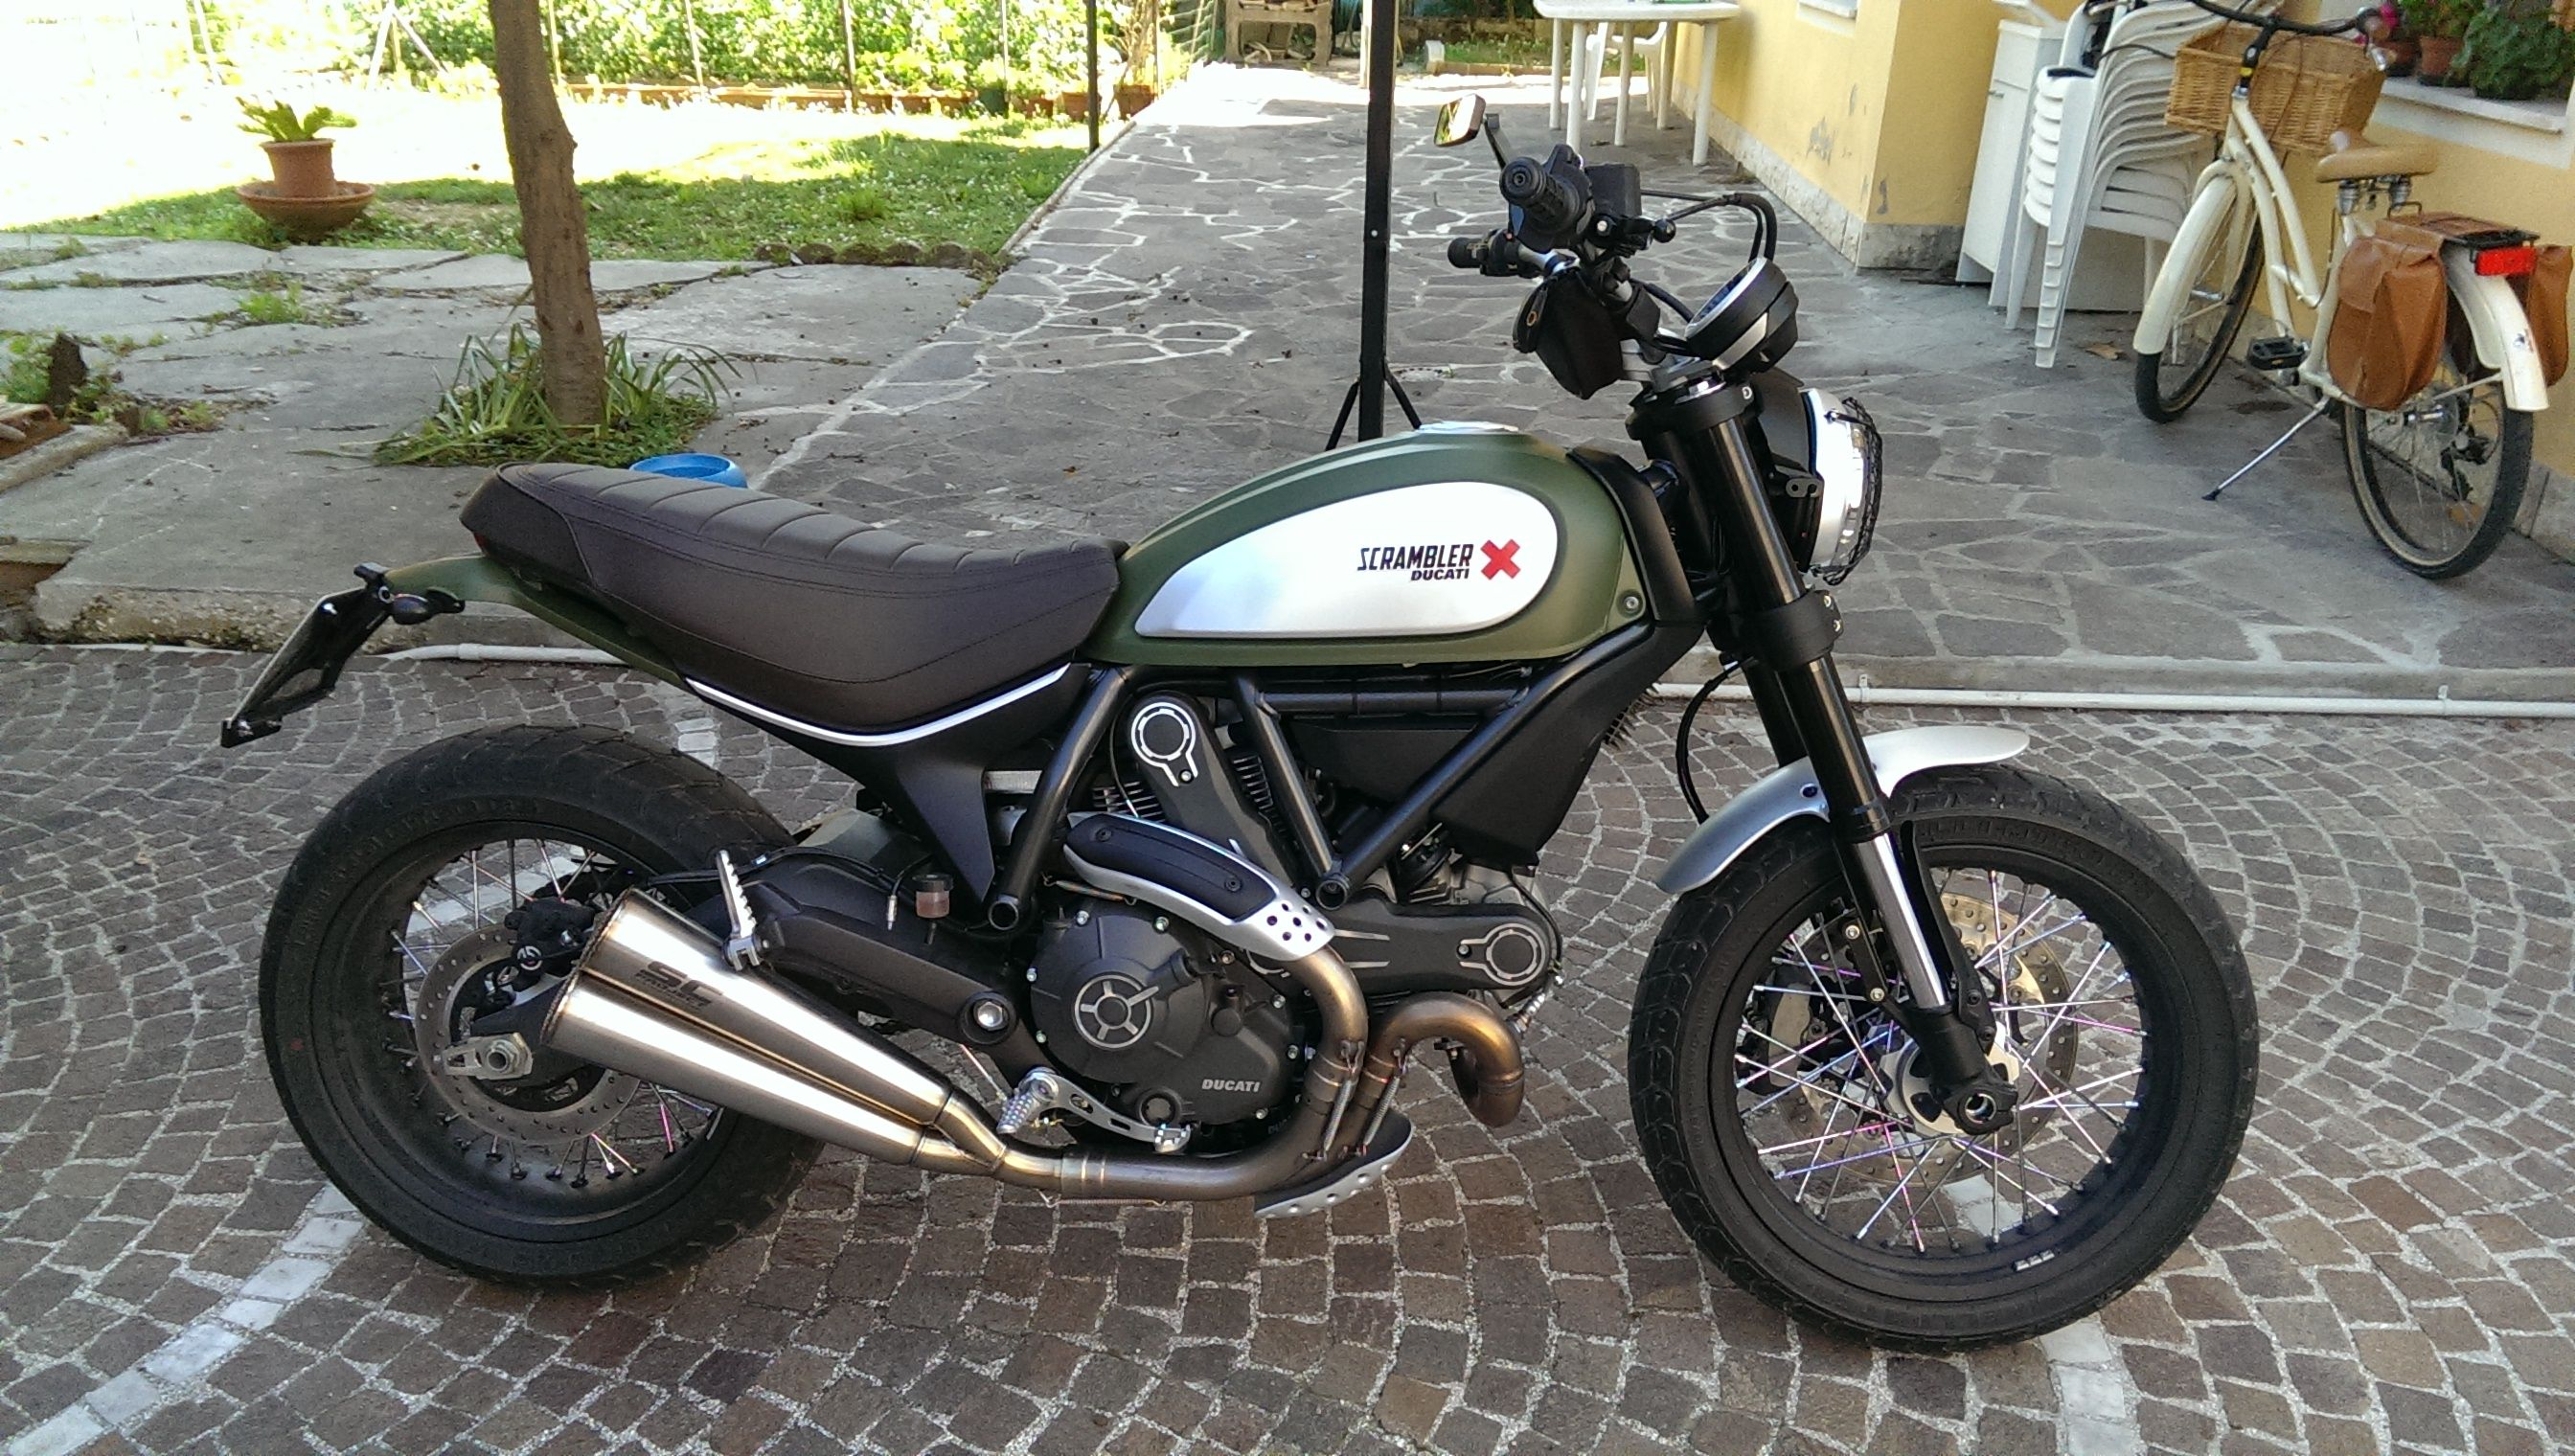 good looking sc project pipes on the urban enduro official exhaust thread ducati scrambler. Black Bedroom Furniture Sets. Home Design Ideas